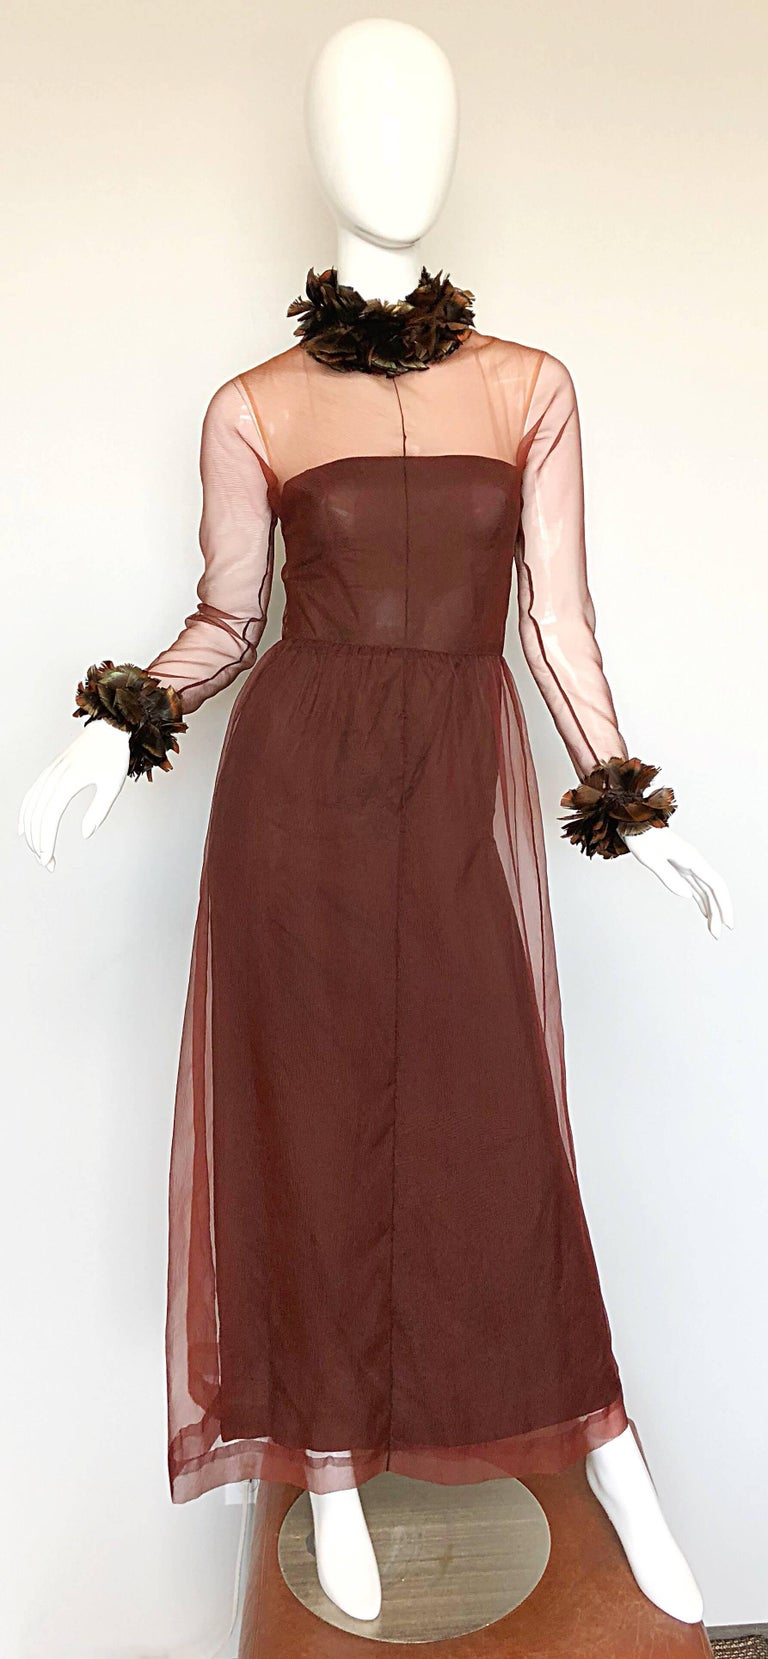 Vintage Givenchy Couture Numbered 1960s Chocolate Brown Feathered Chiffon Gown For Sale 3